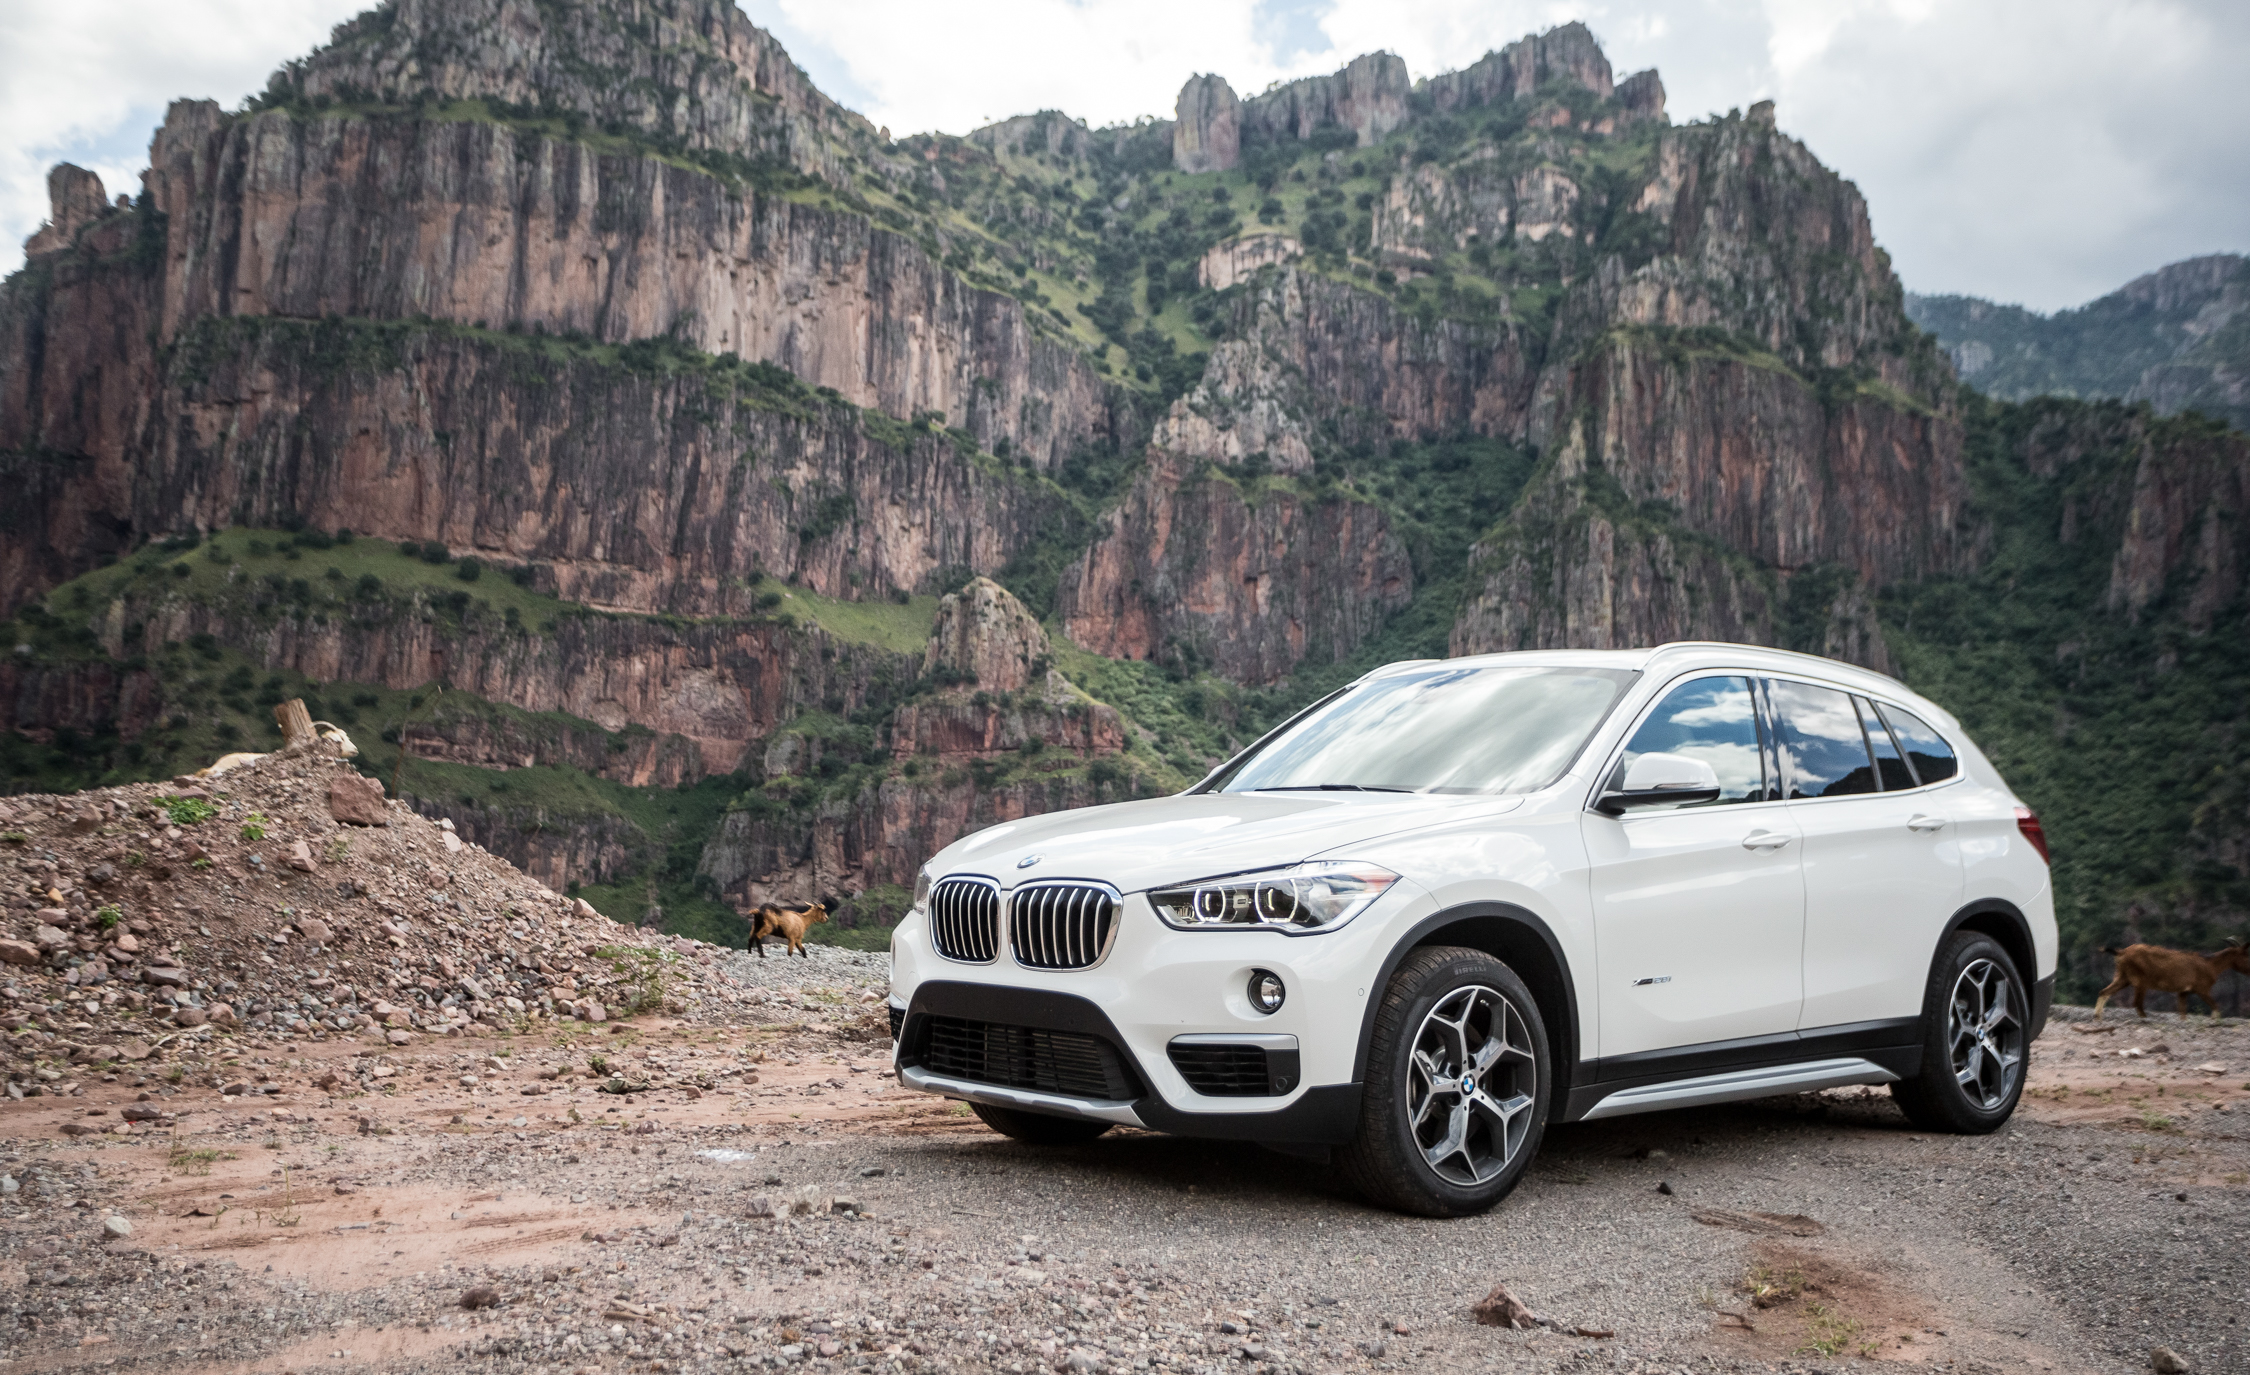 2016 BMW X1 Exterior White Metallic (View 23 of 36)